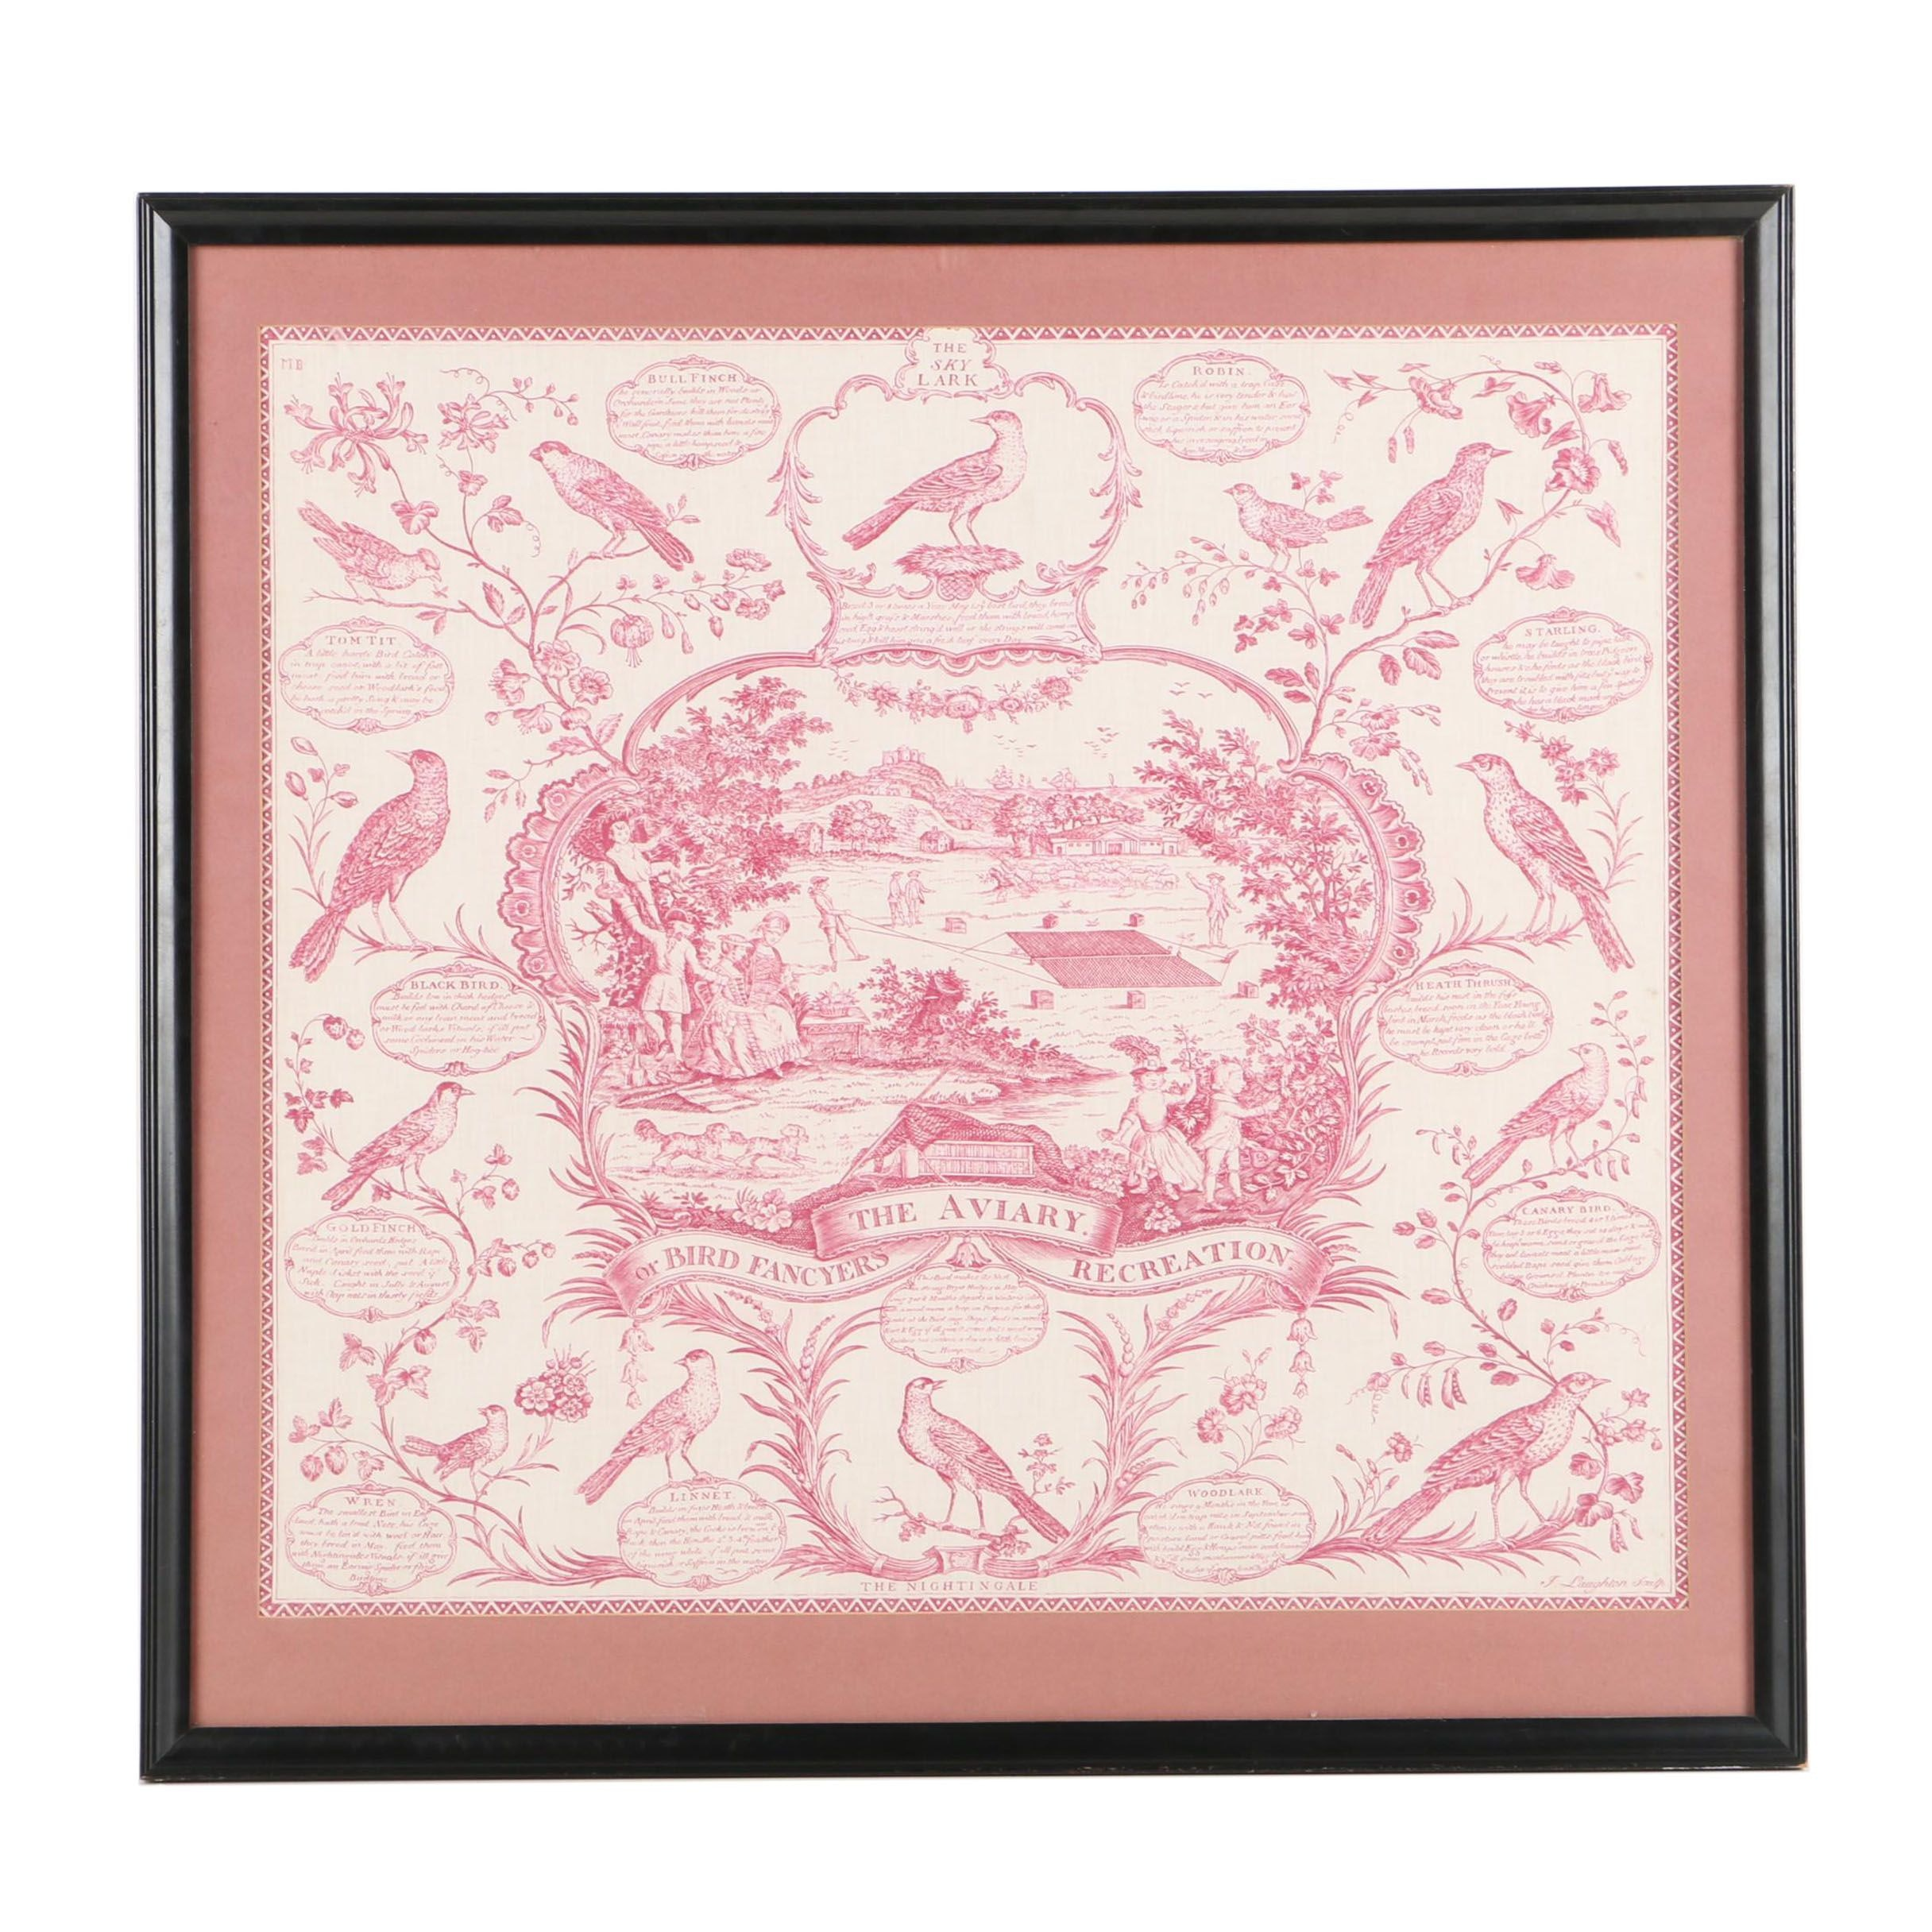 """Reproduction Print on Fabric After J. Laughton's """"The Aviary"""""""